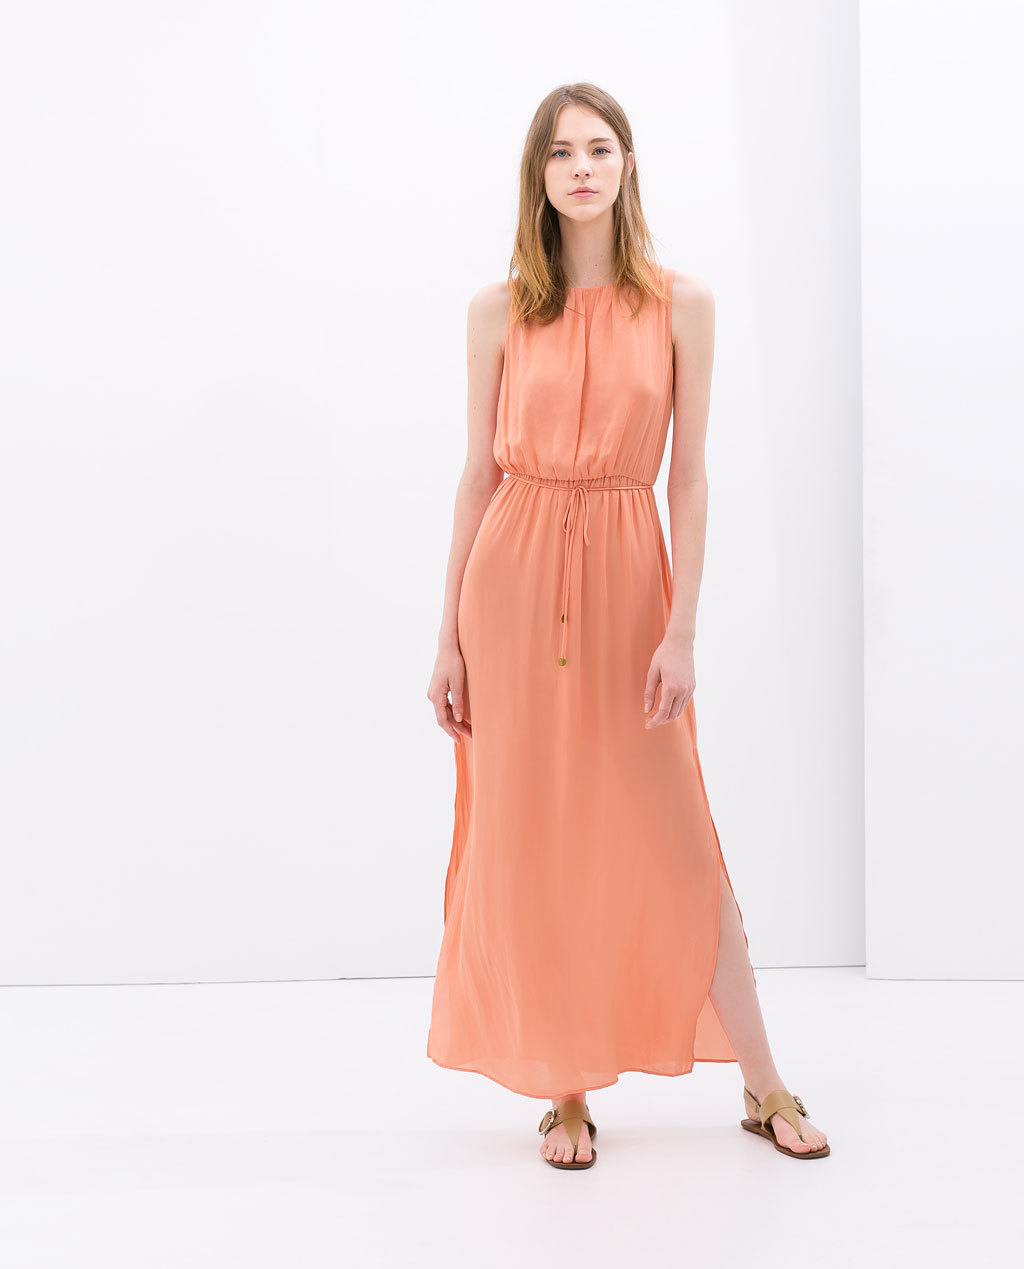 Maxi Dress With Belt - fit: fitted at waist; pattern: plain; sleeve style: sleeveless; style: maxi dress; length: ankle length; waist detail: belted waist/tie at waist/drawstring; predominant colour: bright orange; occasions: casual, holiday; fibres: polyester/polyamide - 100%; neckline: crew; hip detail: slits at hip; sleeve length: sleeveless; texture group: sheer fabrics/chiffon/organza etc.; pattern type: fabric; season: s/s 2014